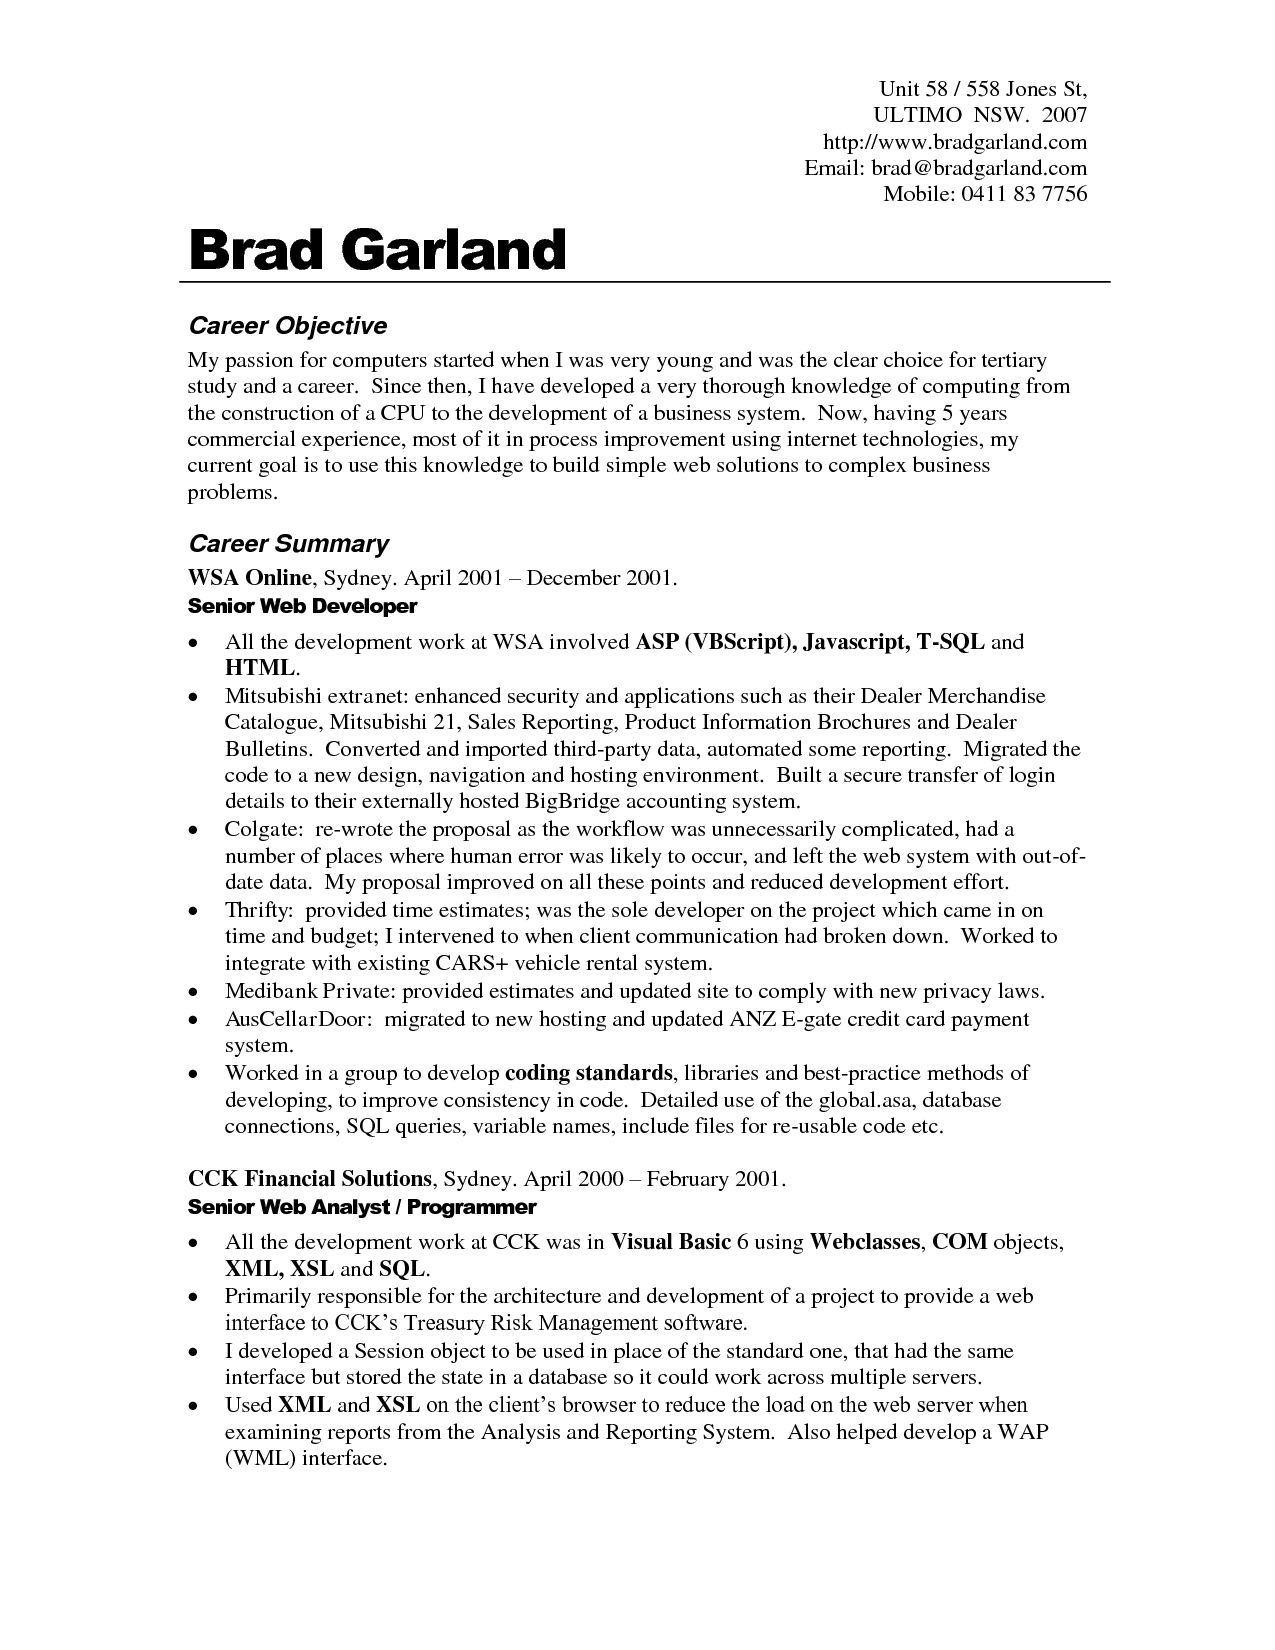 Nursing Objectives For Resume Resume Examples Job Objective  Sample Resume Entry Level And .